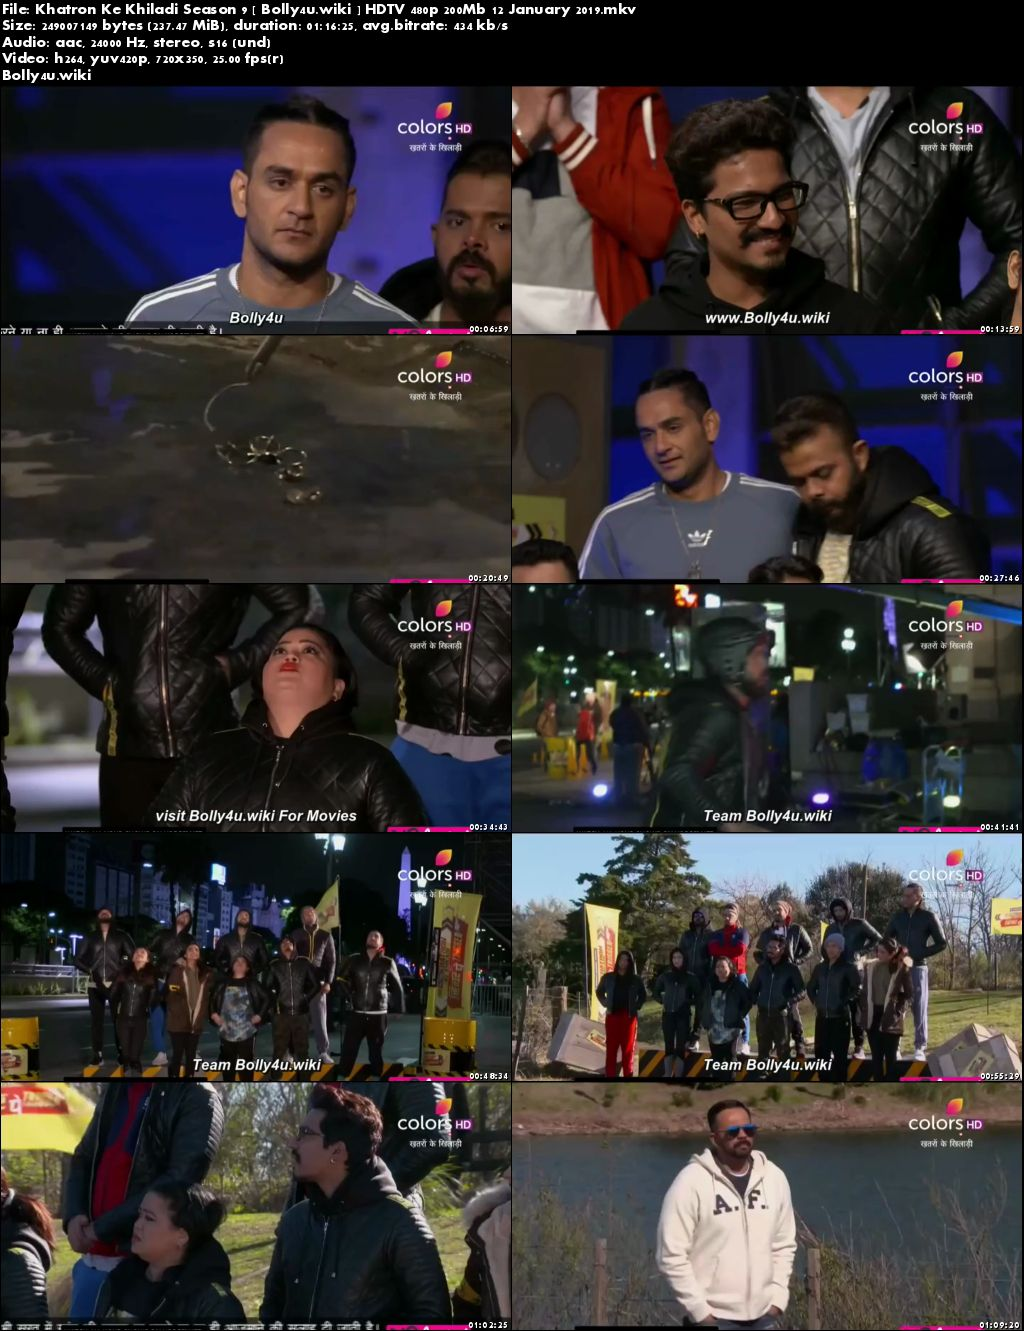 Khatron Ke Khiladi Season 9 HDTV 480p 200Mb 12 January 2019 Download